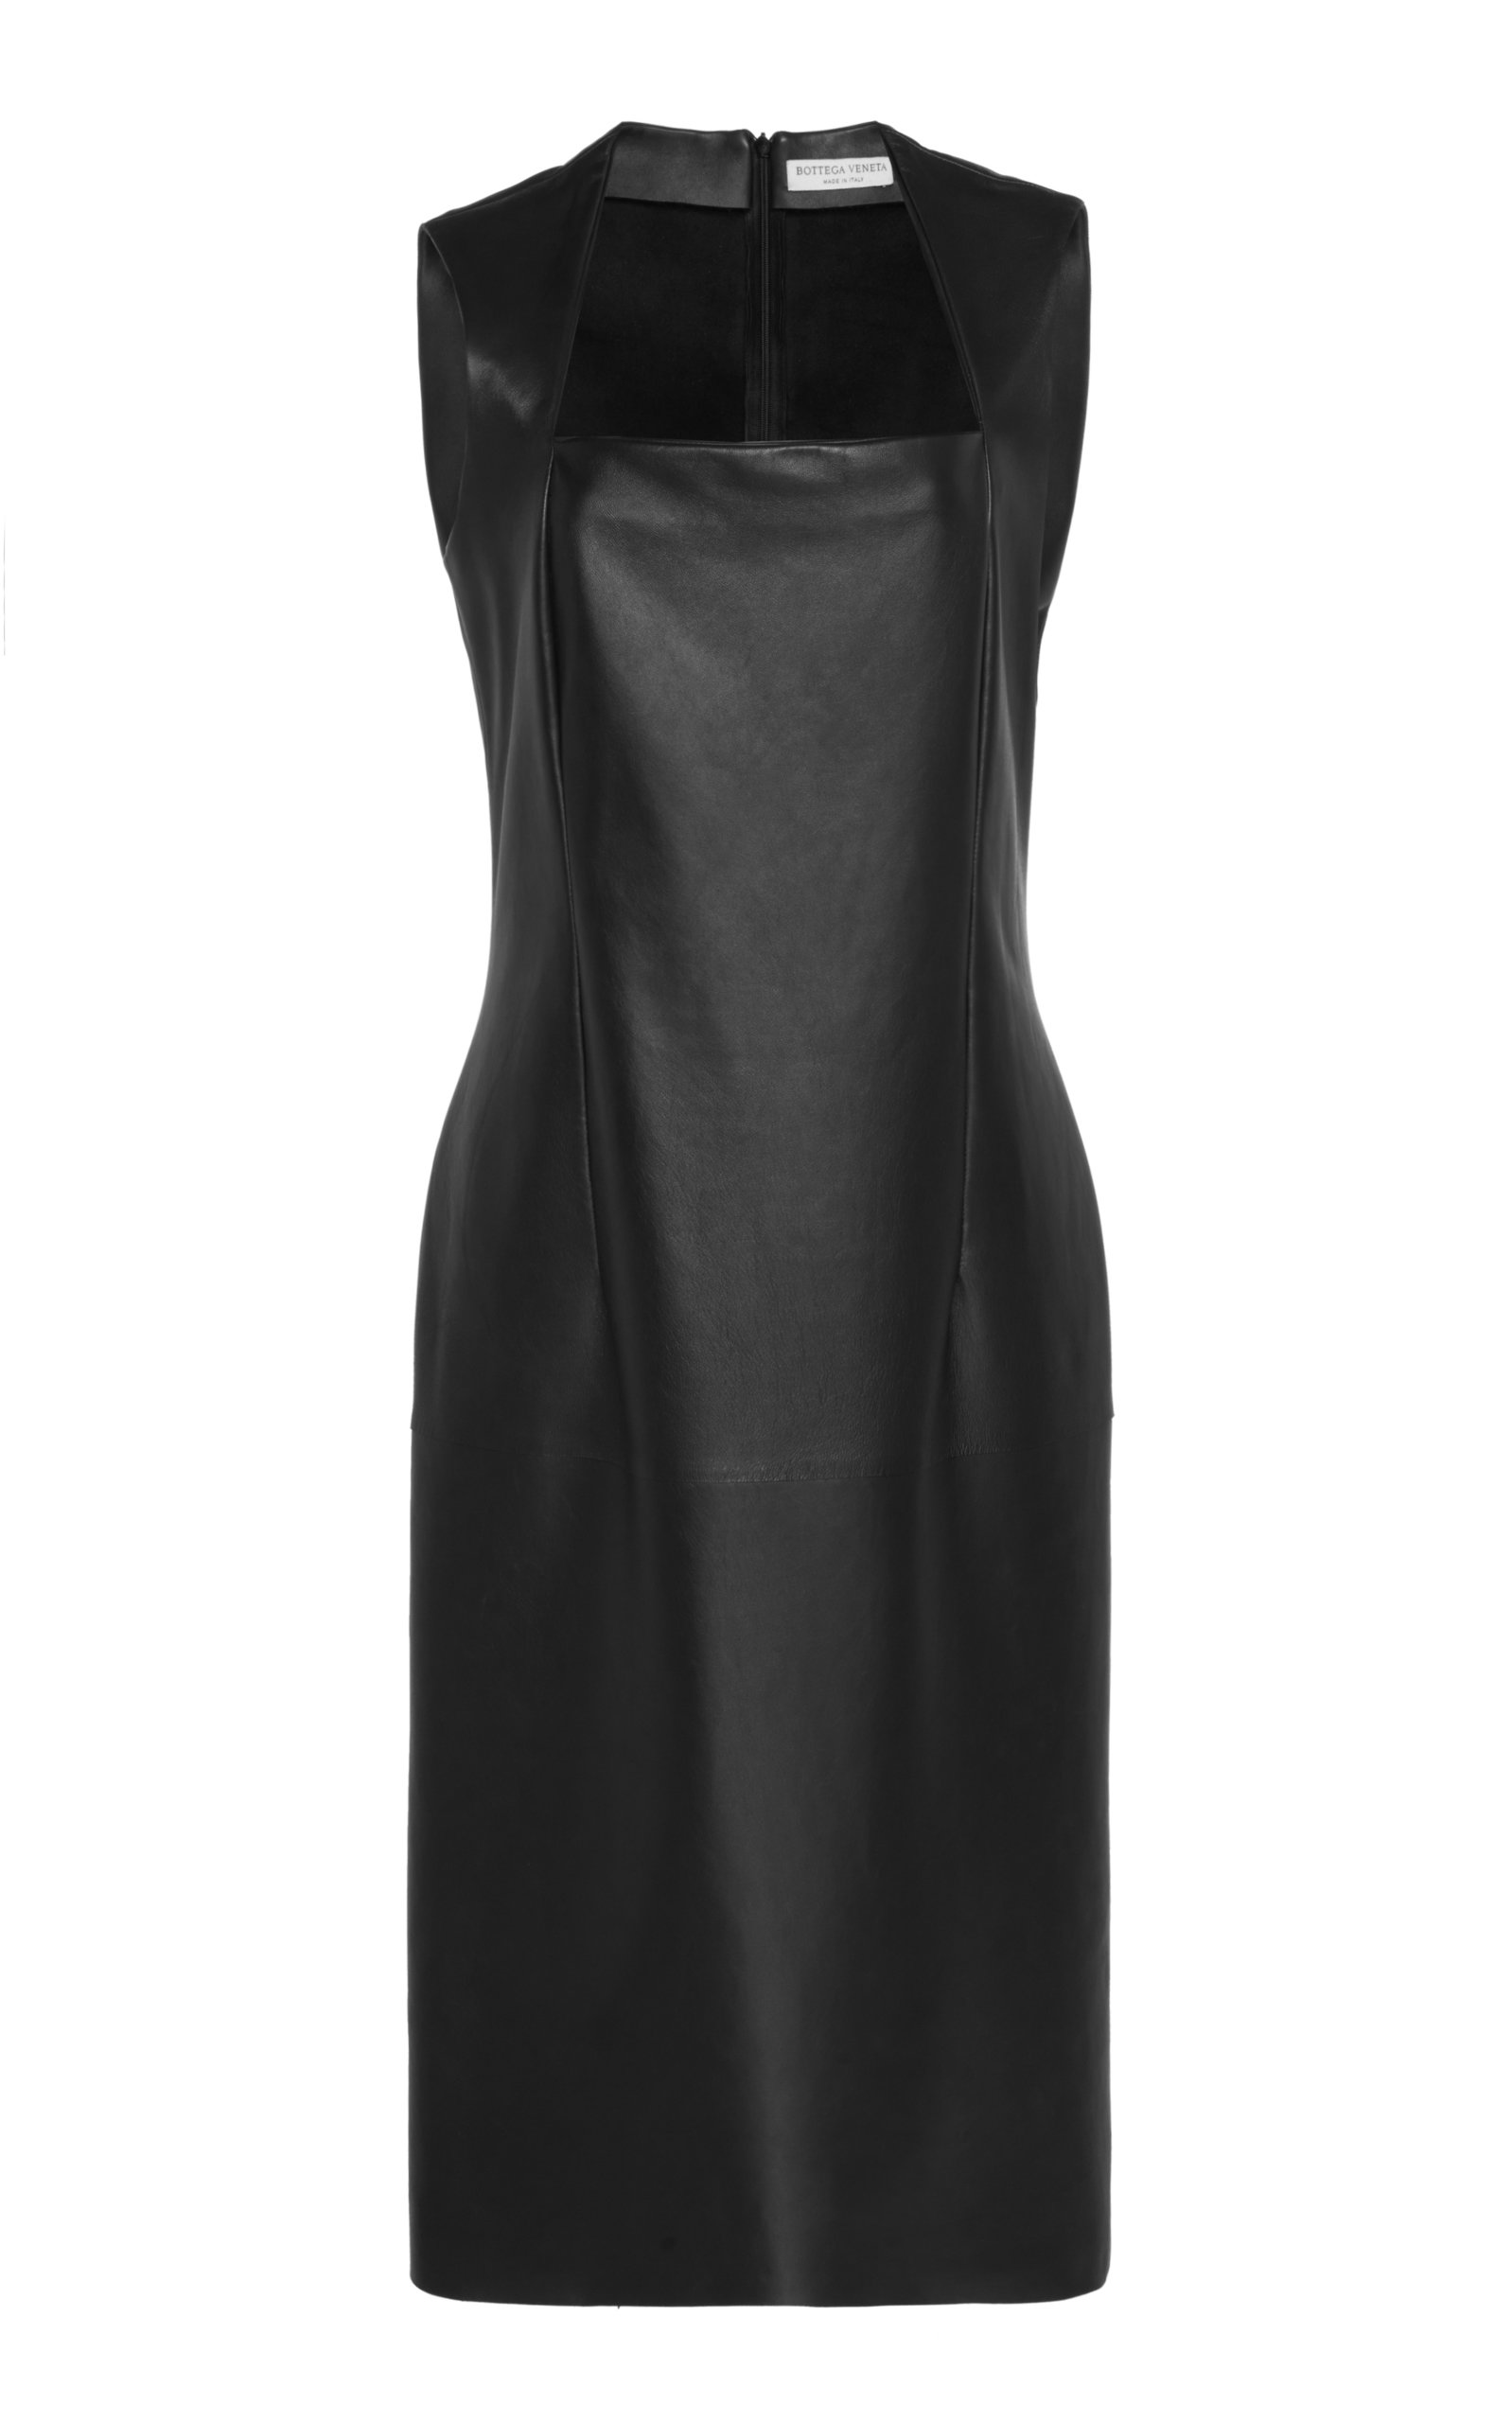 Buy Bottega Veneta Leather Midi Dress online, shop Bottega Veneta at the best price